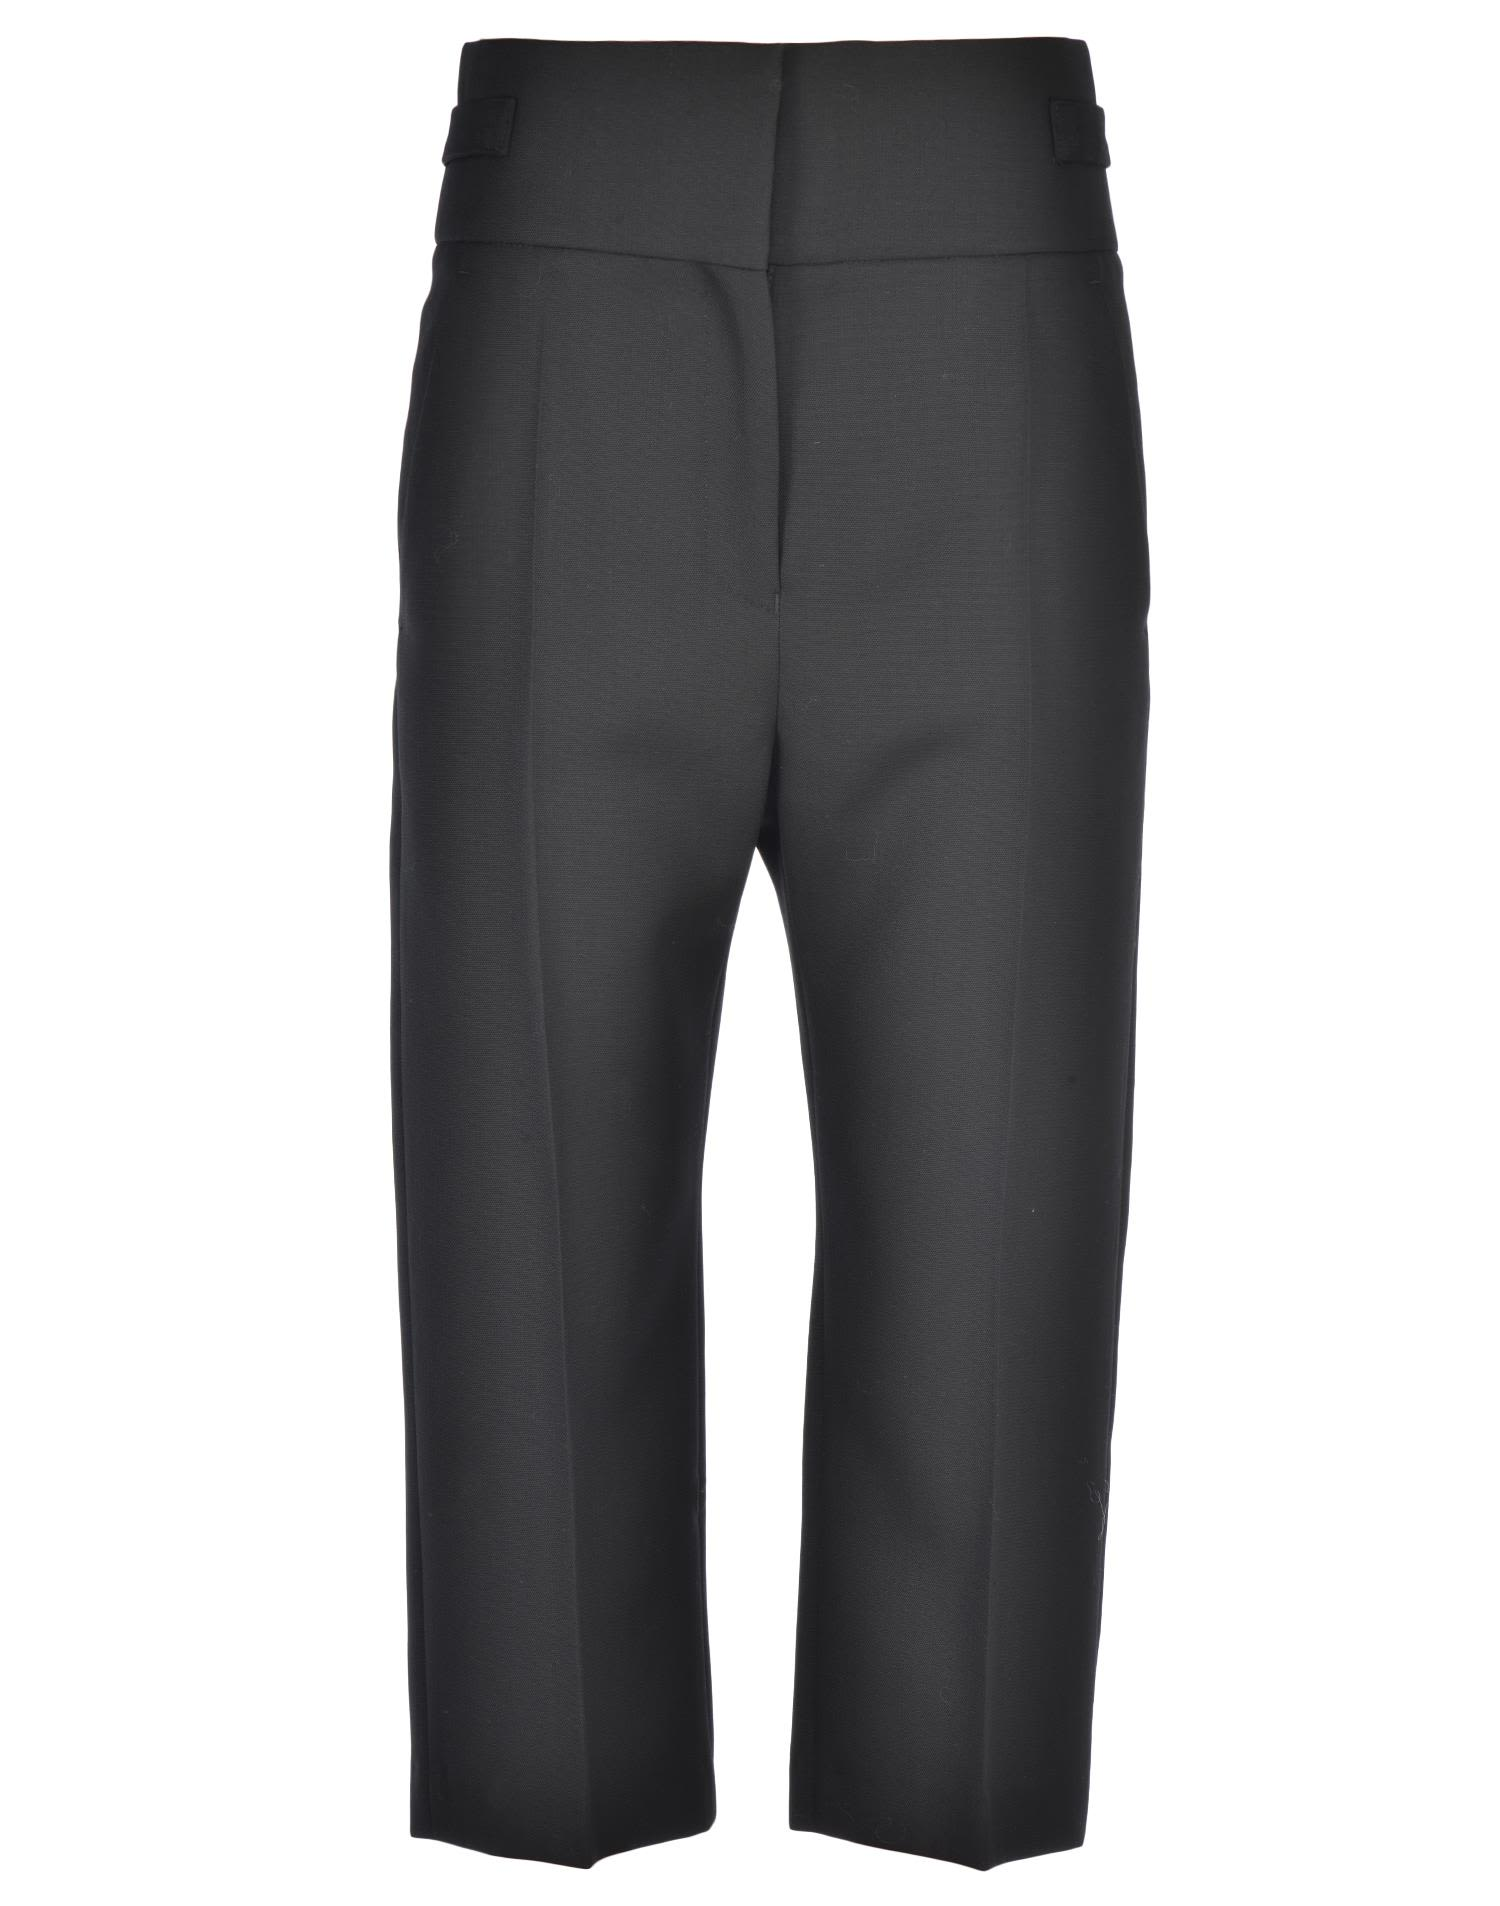 Haider Ackermann Wool Trousers